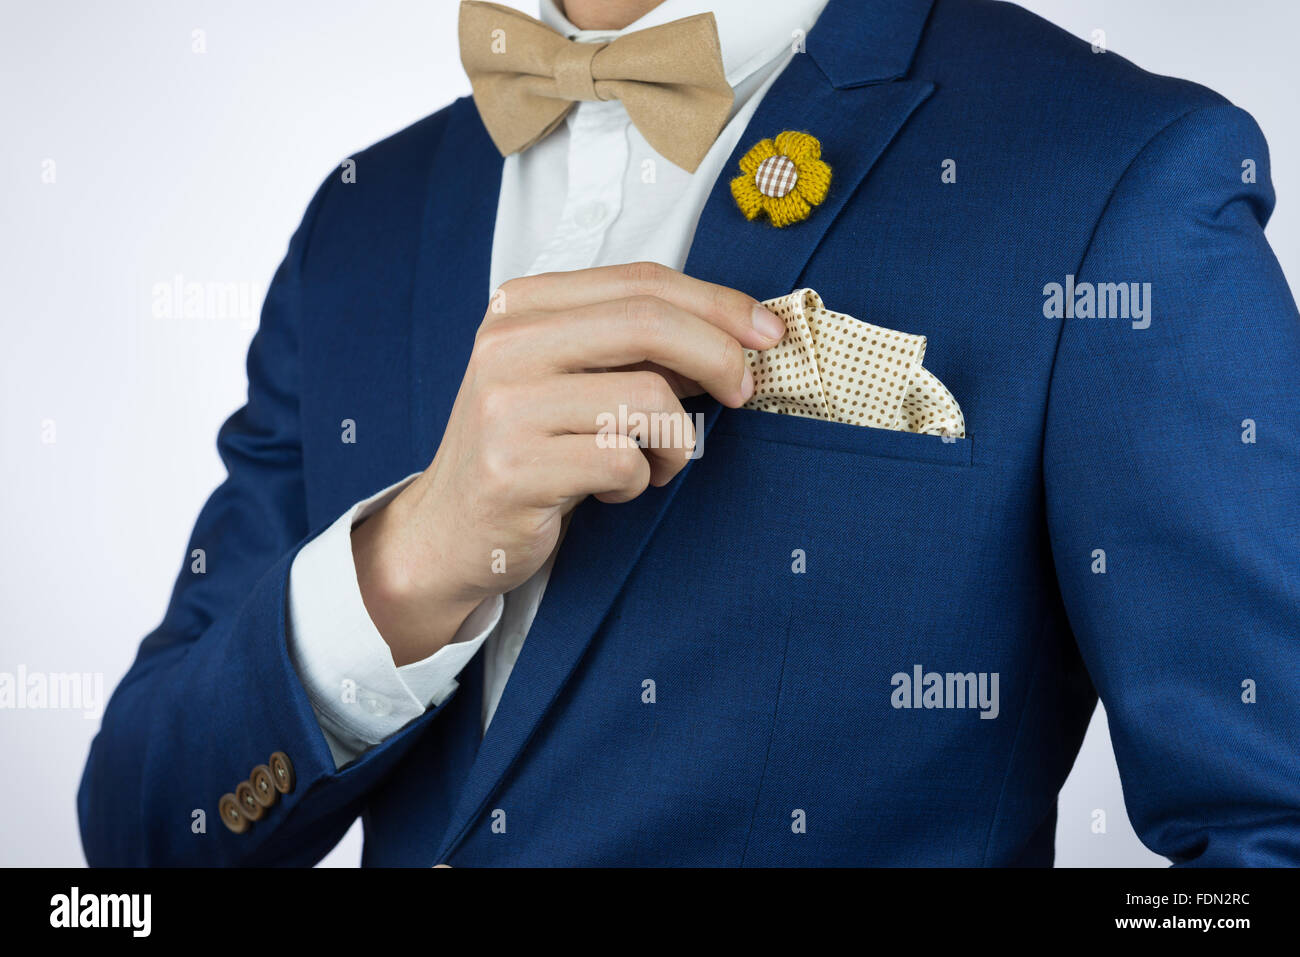 Man in blue suit with coffee cream bowtie color, flower brooch, and dot pattern pocket square, close up Stock Photo